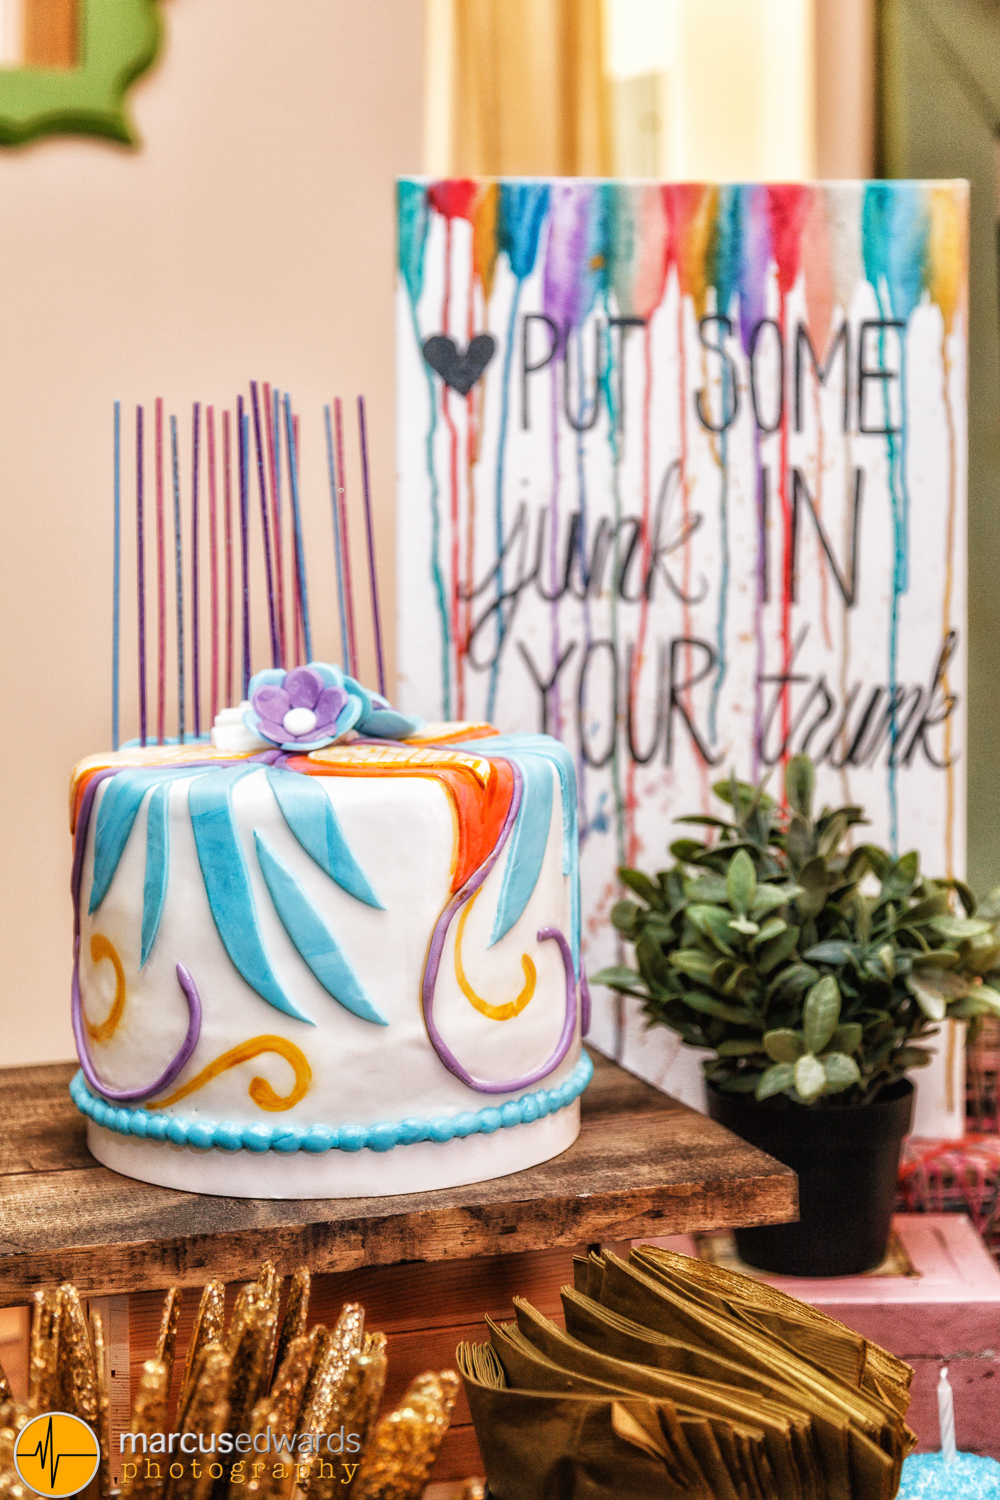 Cindy, Janie's mom, makes the most fantastic cakes. Well, pretty much everything she makes is great. But she IS famous for her cakes.